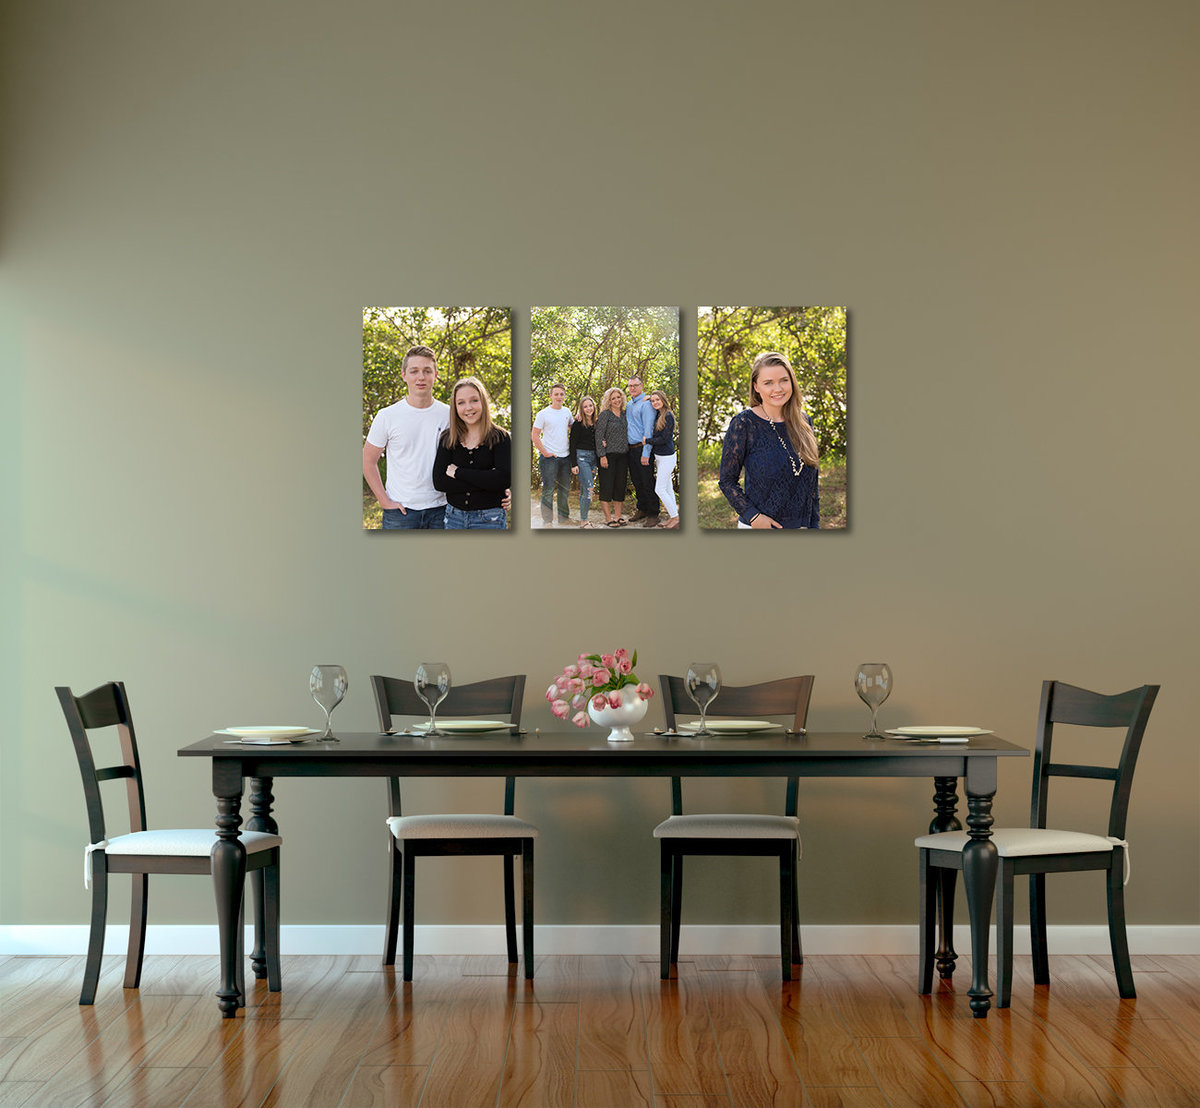 Family Photos on Canvases in Dining Room